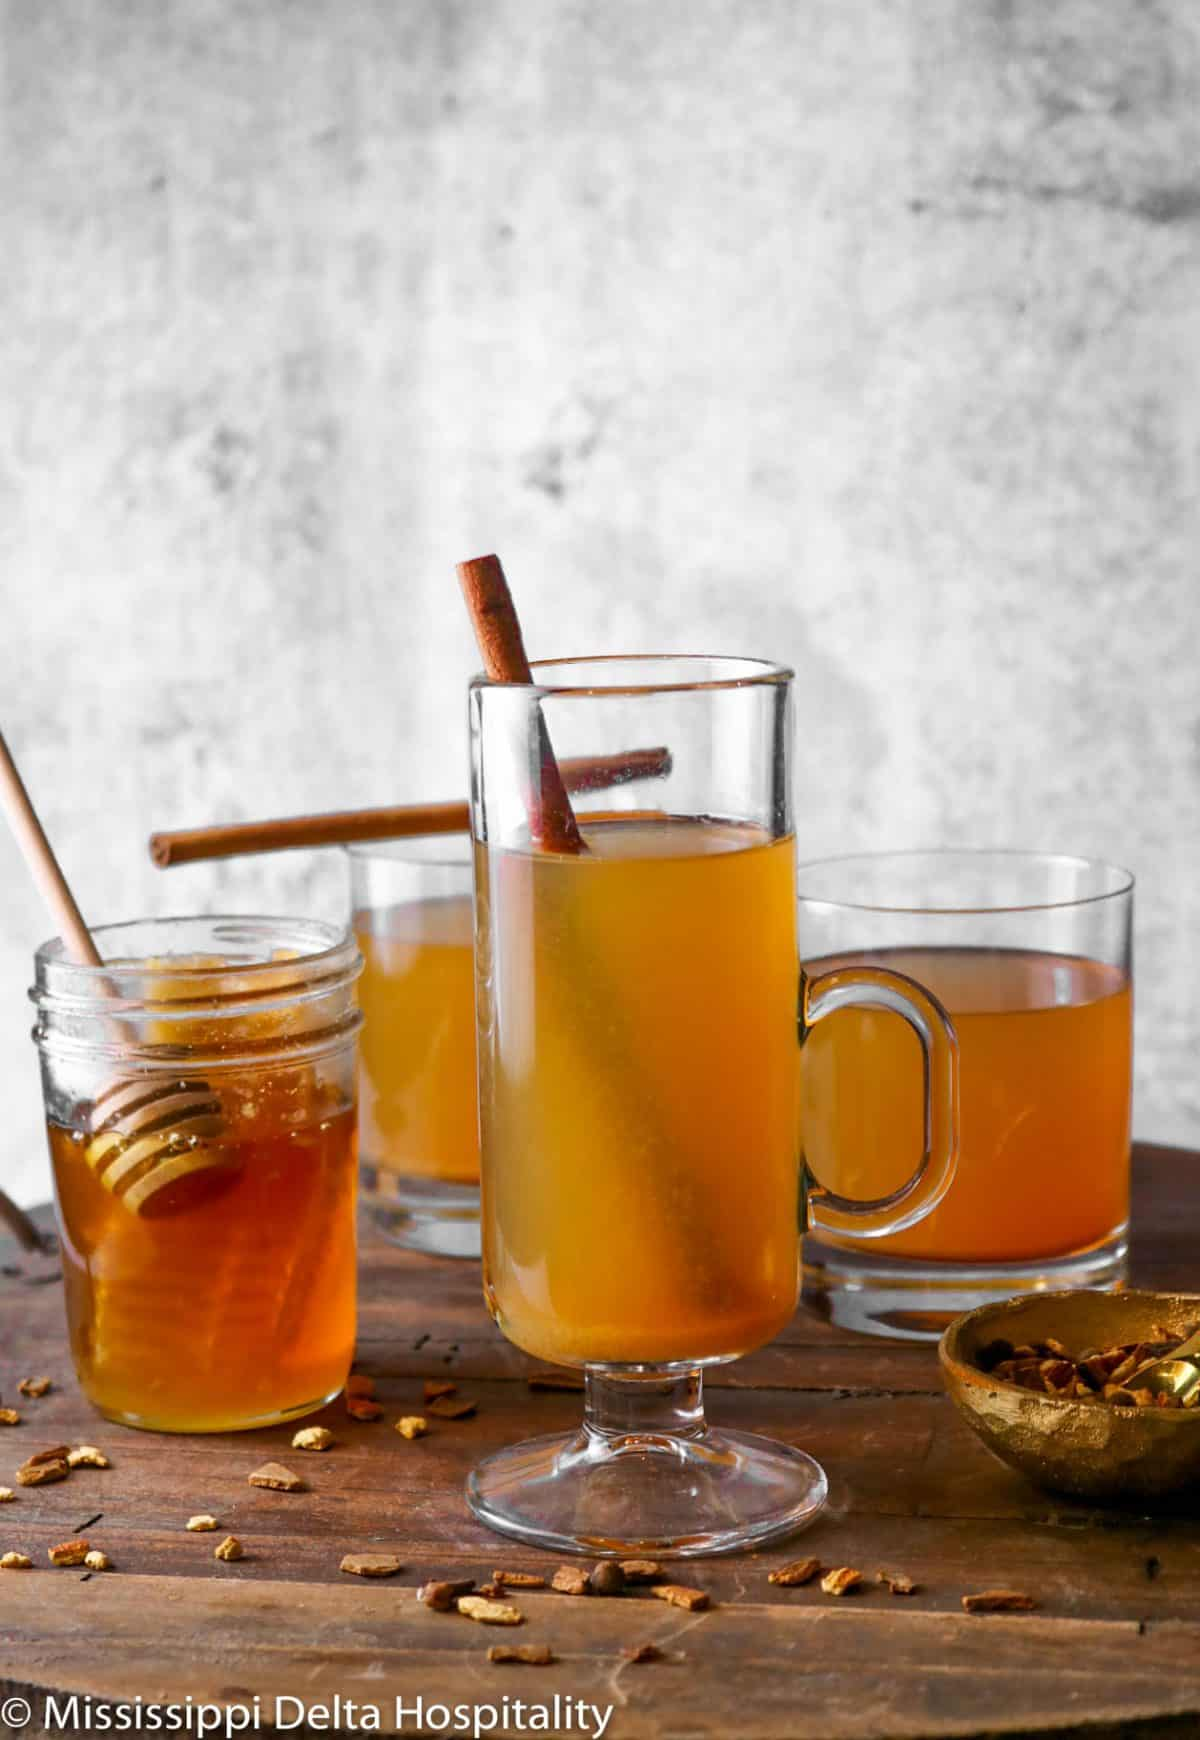 three glasses of apple cider on a wood board with a jar of honey and cinnamon sticks